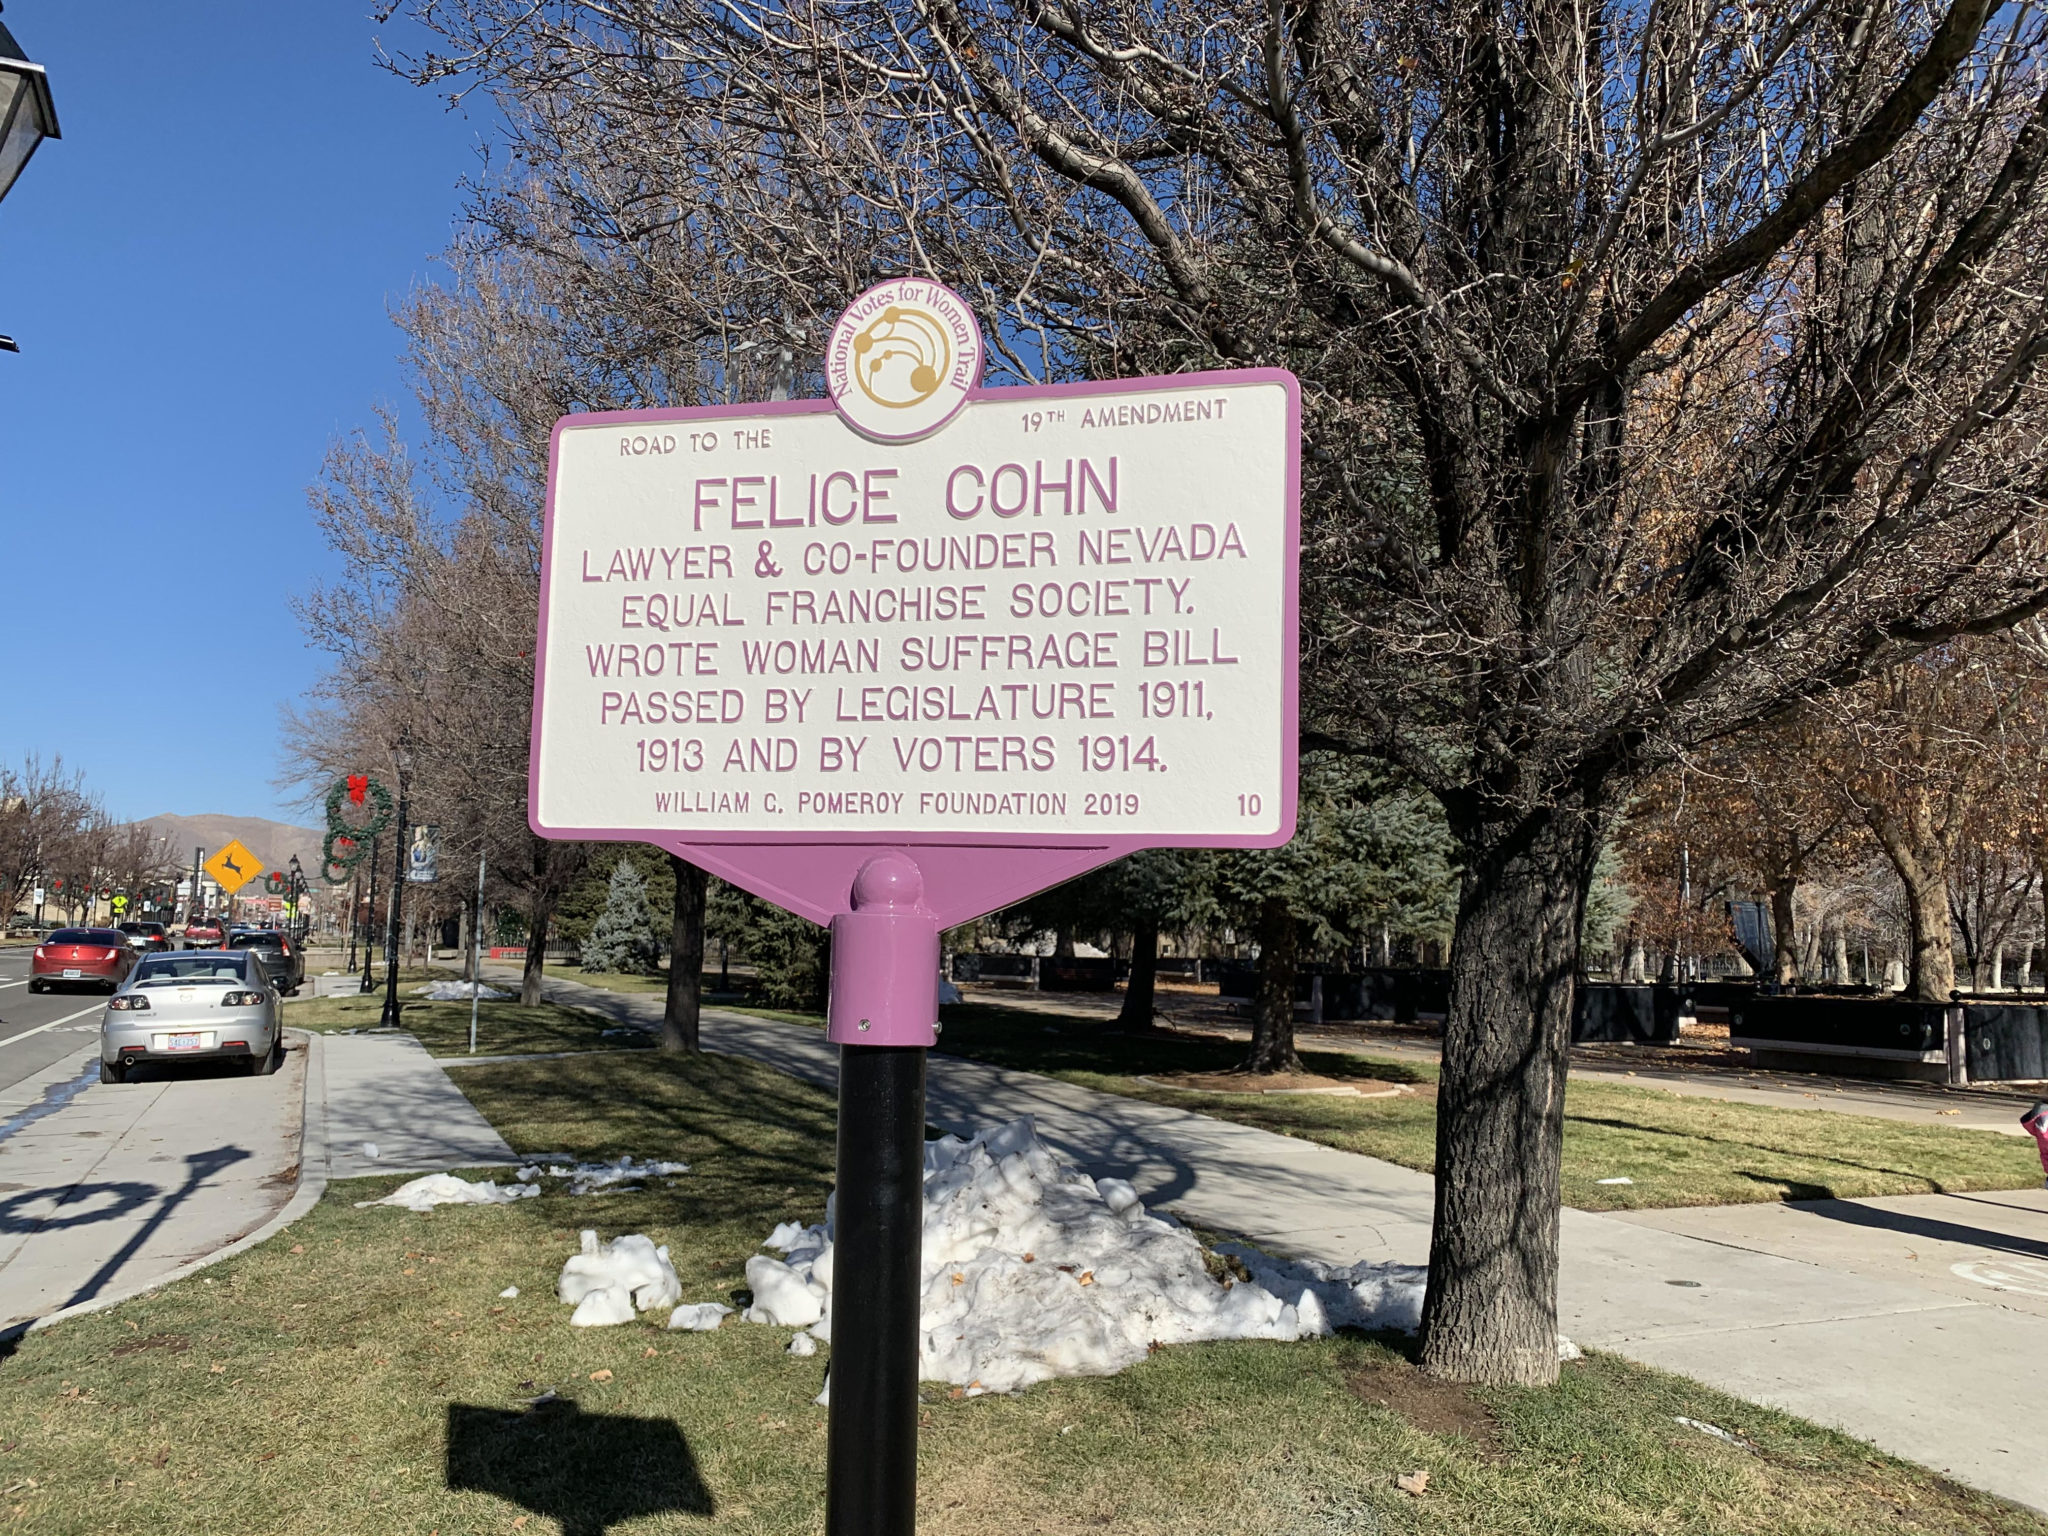 Felice Cohn Pomeroy Marker unveiled in Carson City, Nevada